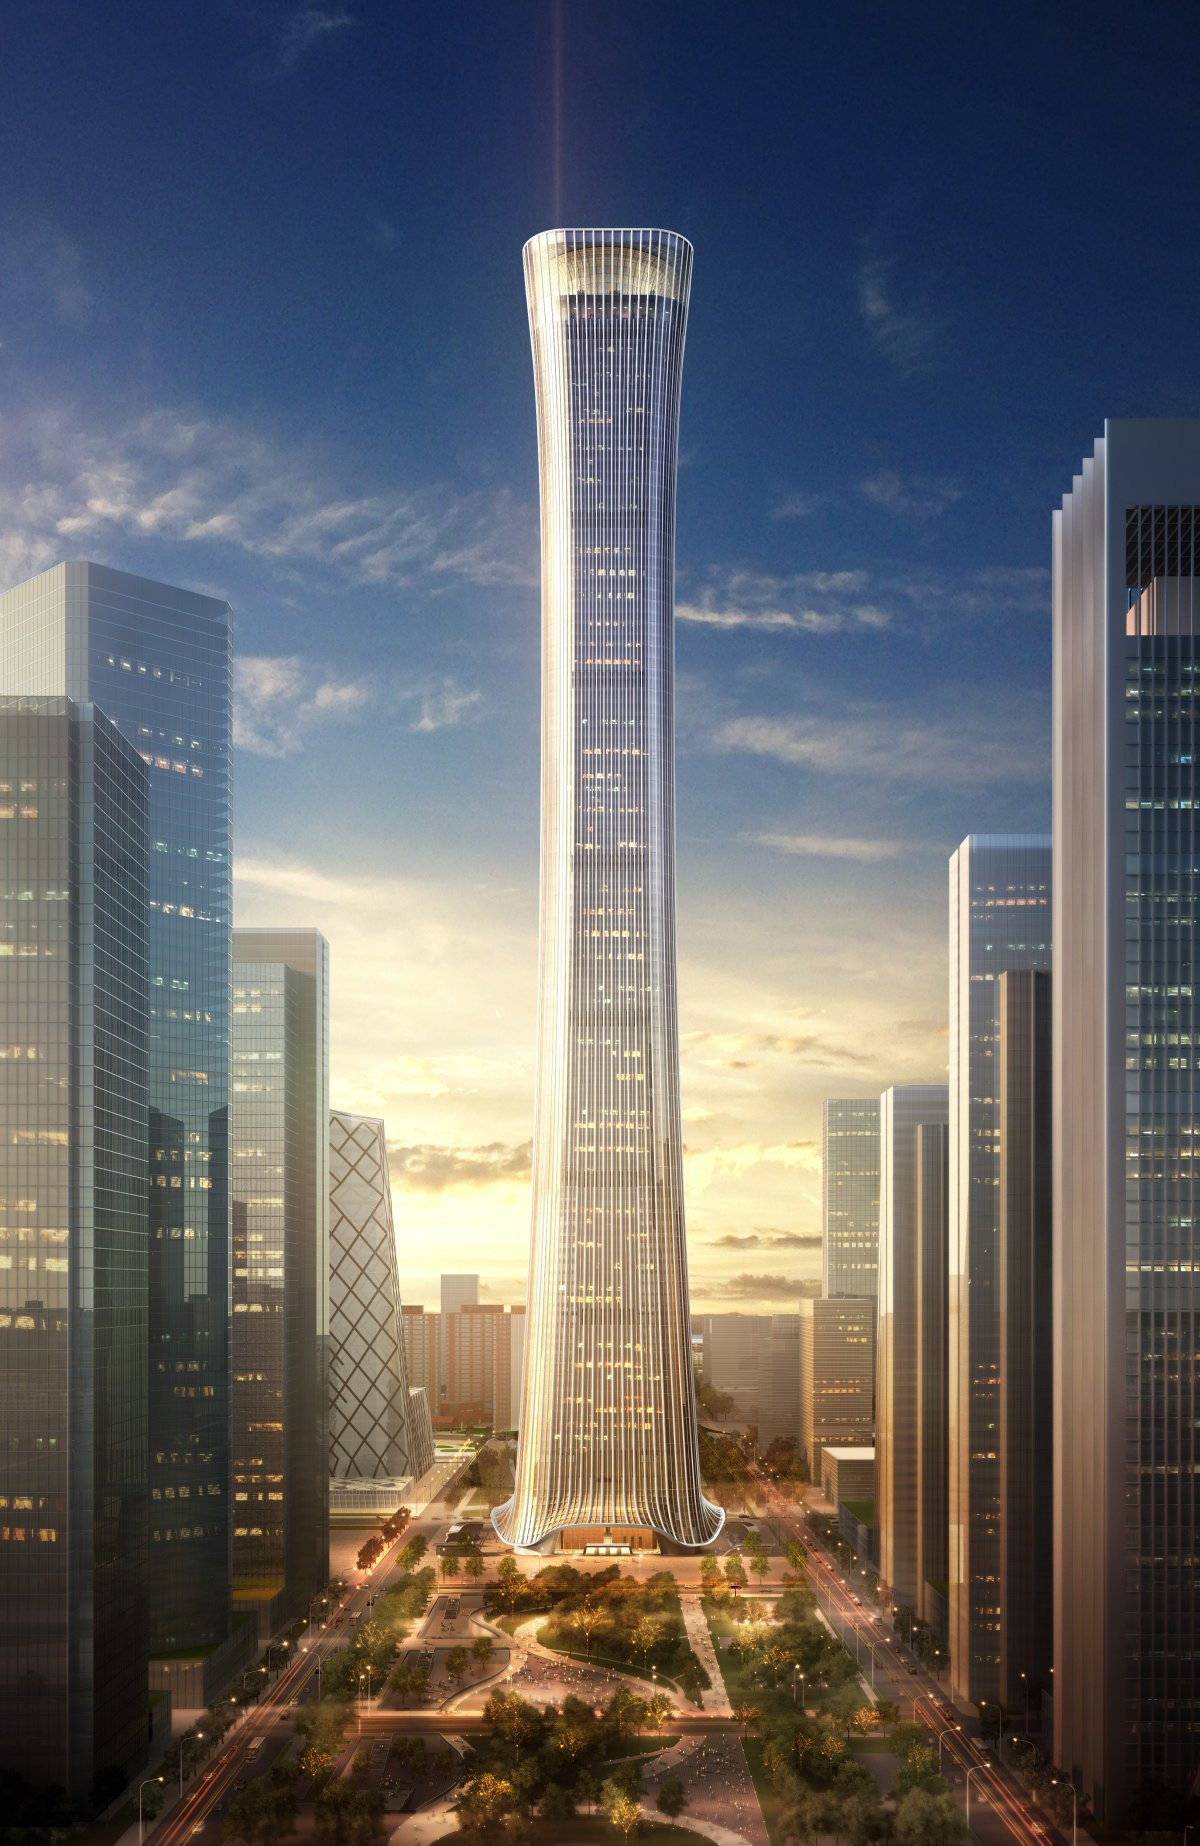 Architecture Future: The 10 Tallest Skyscrapers Of The Future